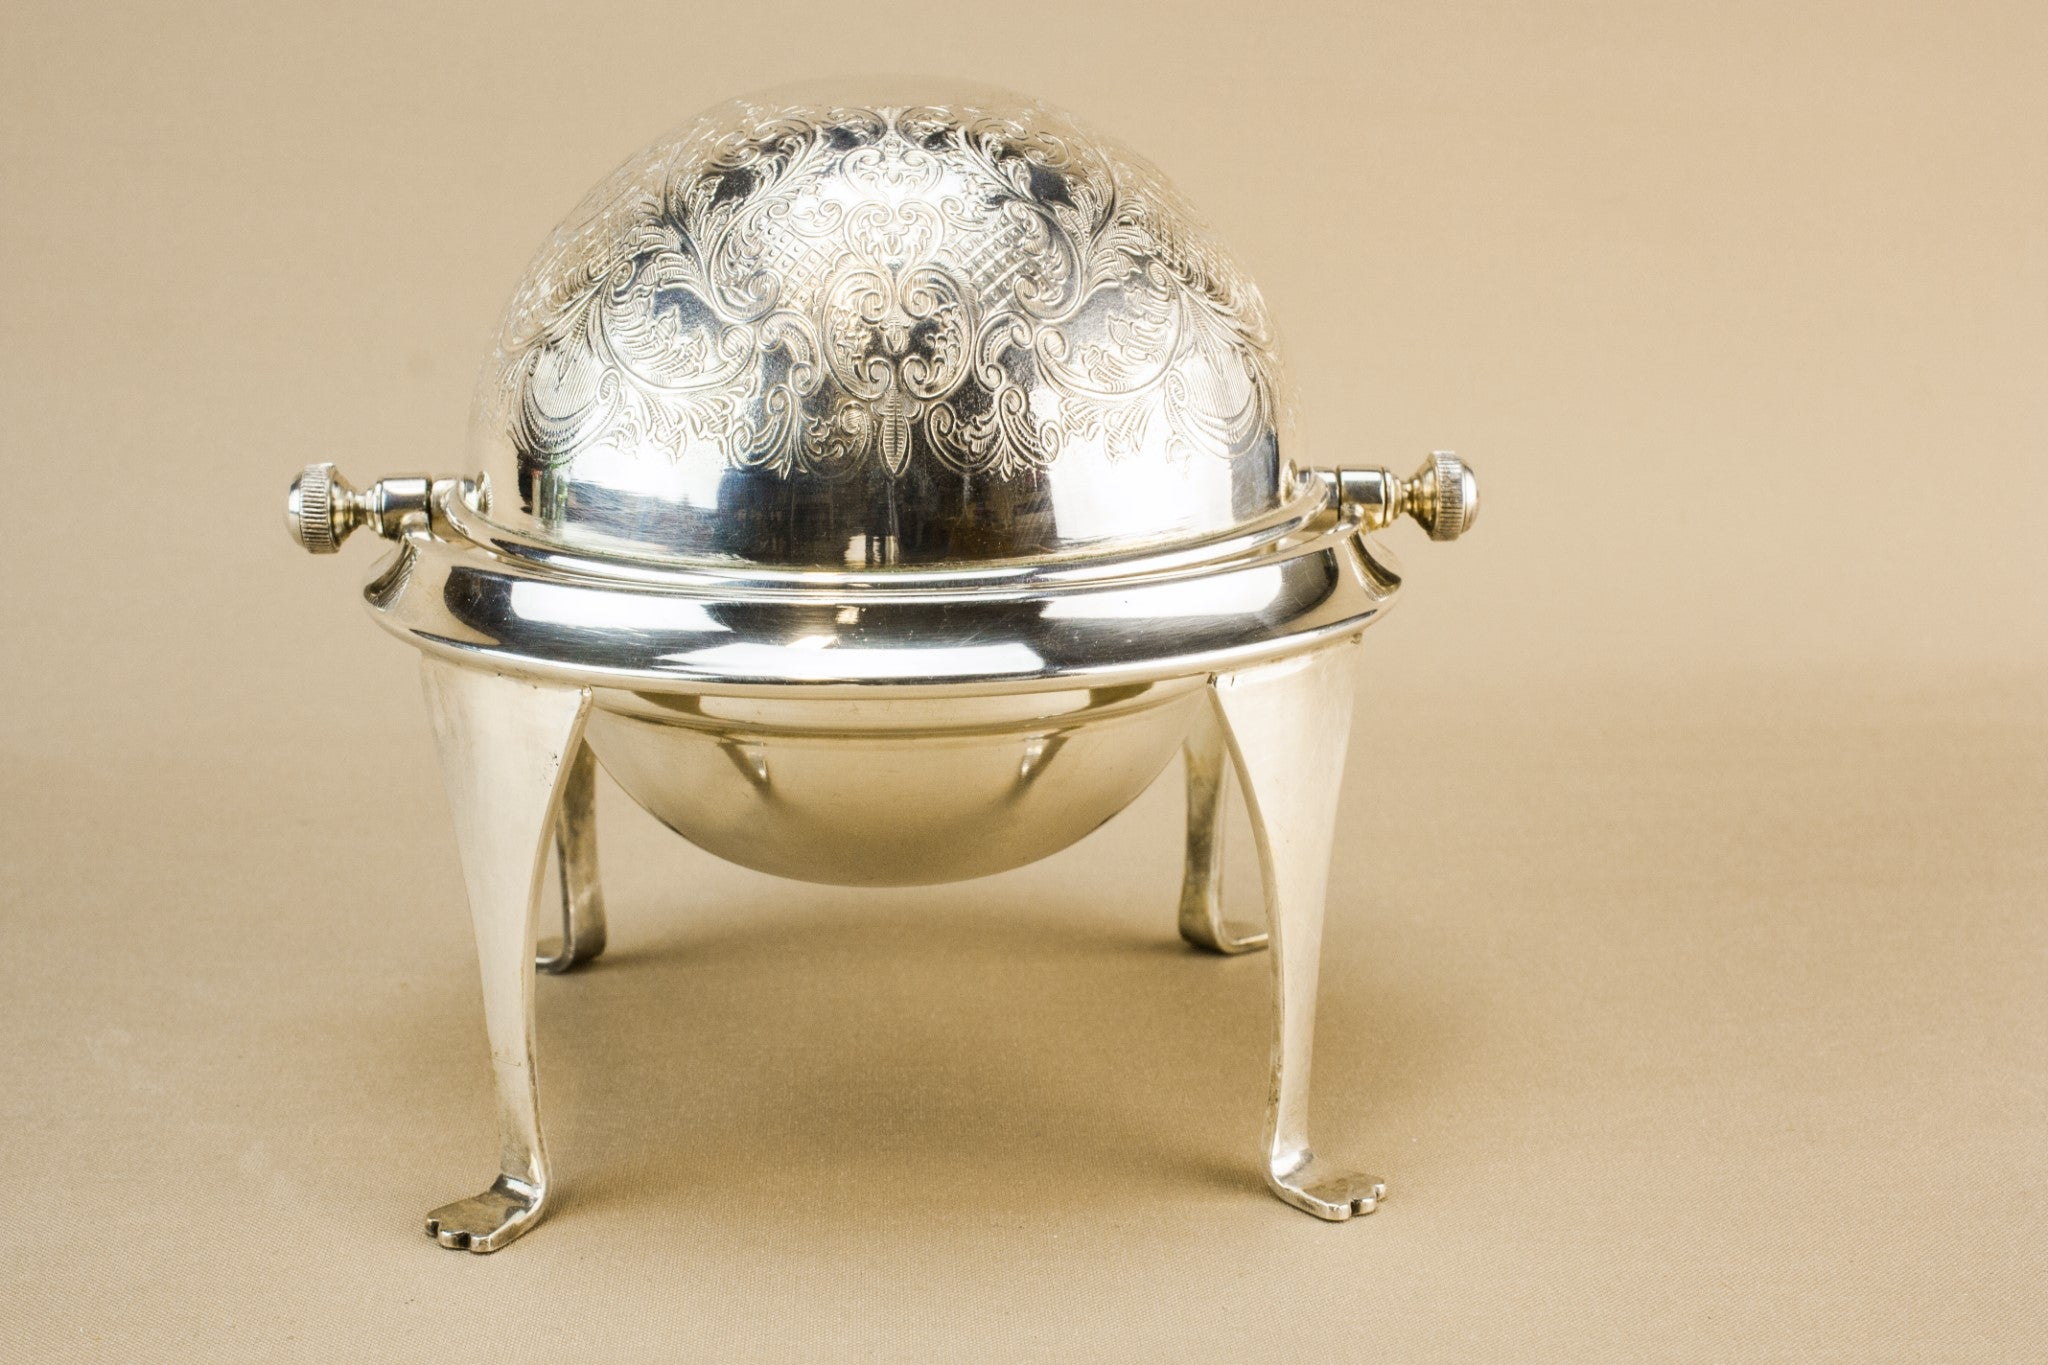 Caviar dish or sugar bowl